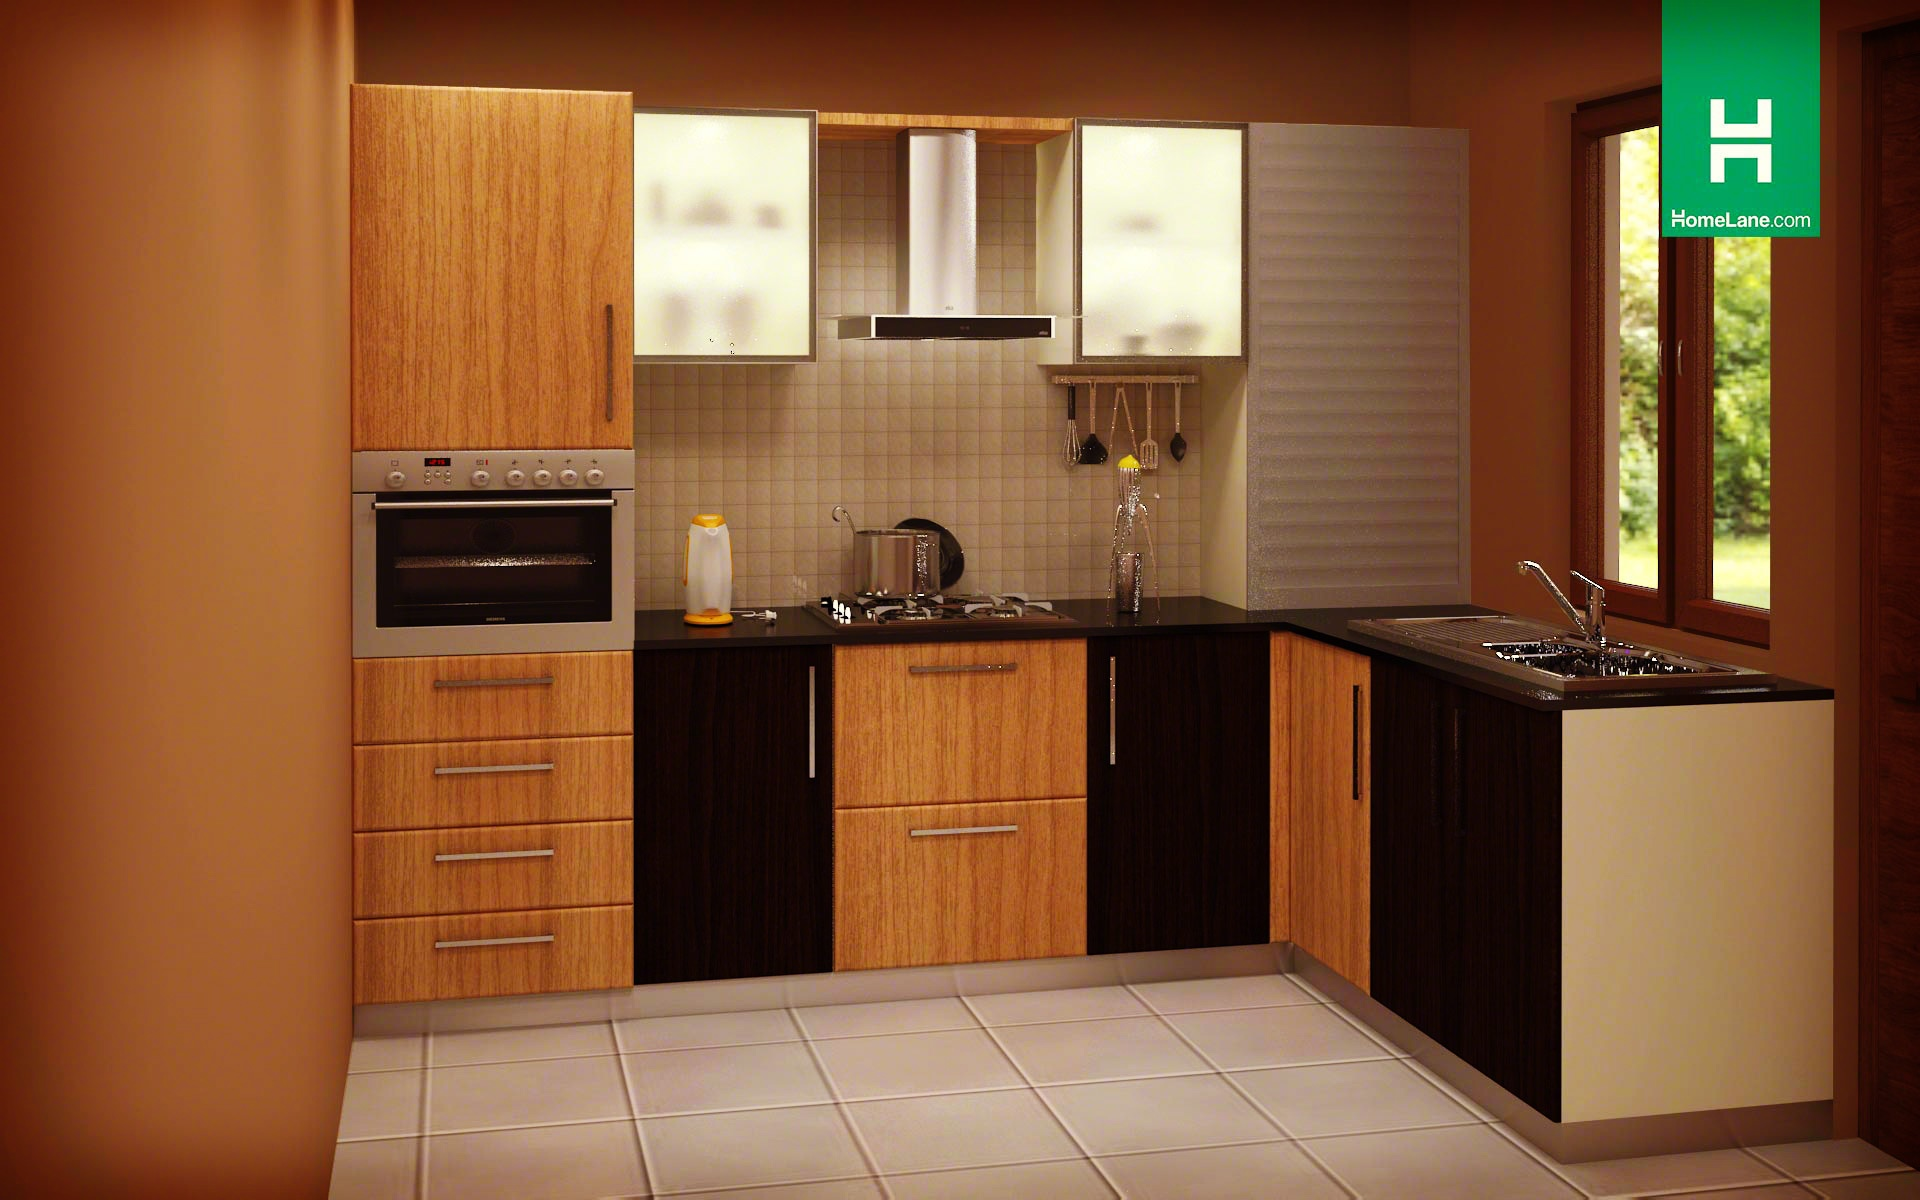 L shaped modular kitchen designs prices homelane india for L shaped kitchen design ideas india